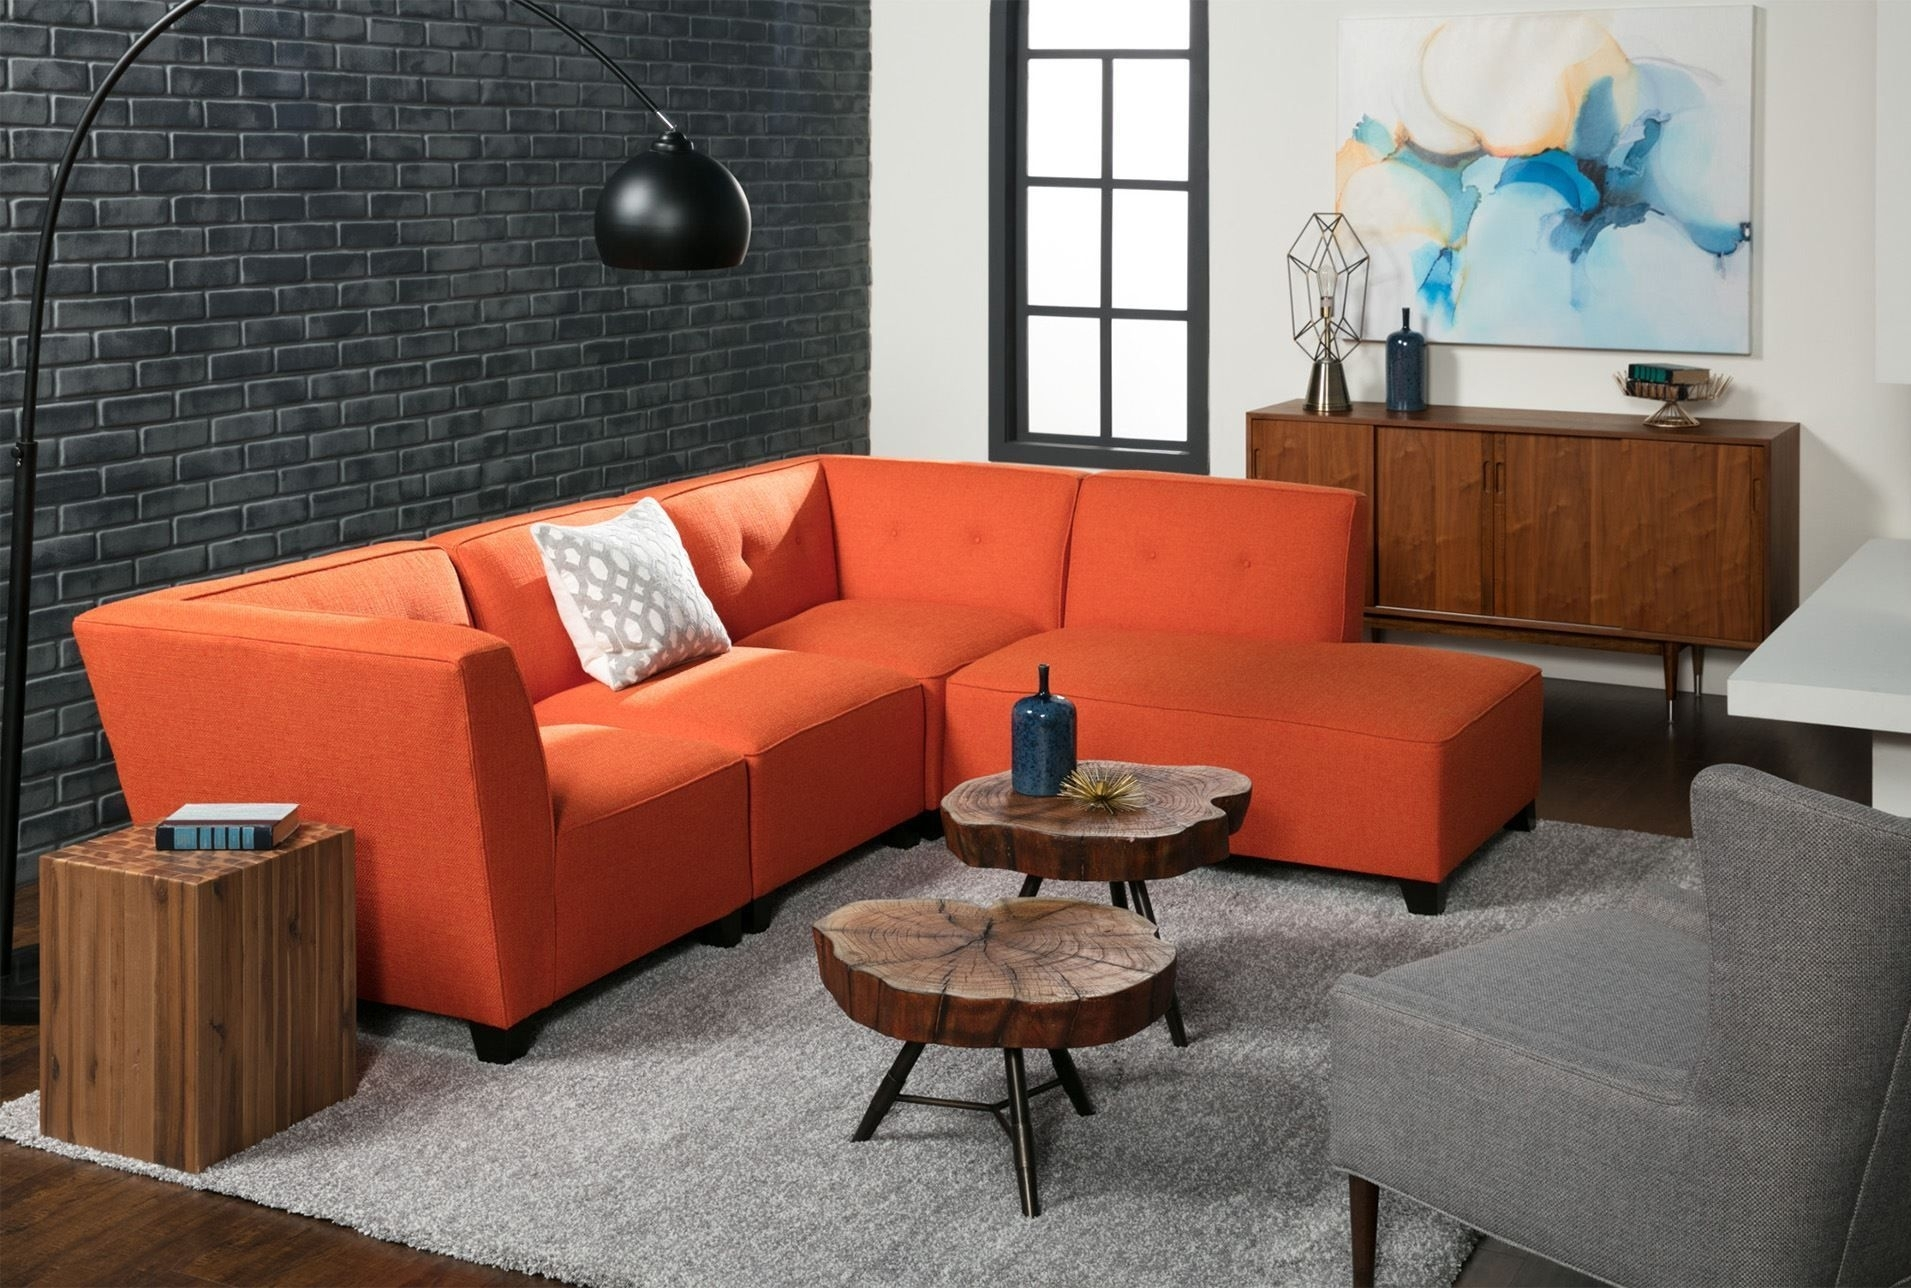 Benton 4 Piece Sectional   Remodel   Pinterest   Sweet House With Benton 4 Piece Sectionals (Image 6 of 25)